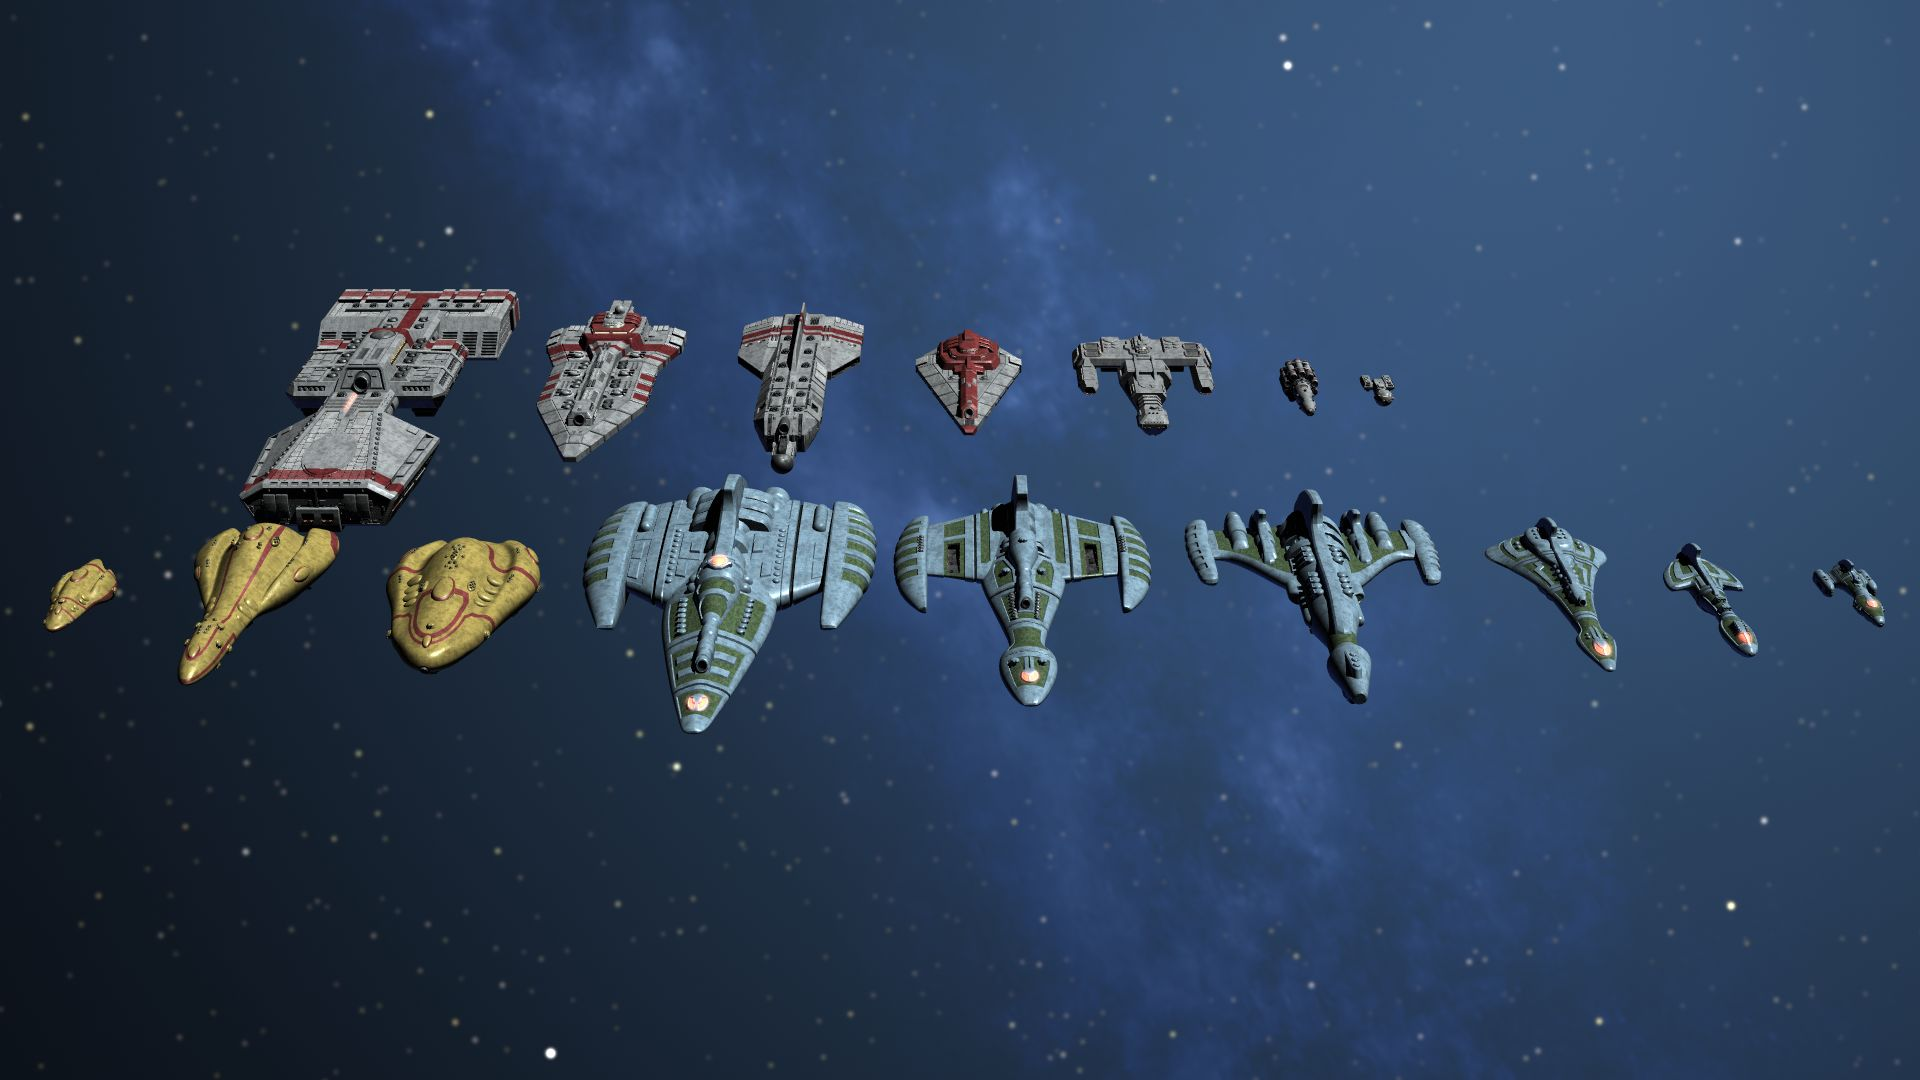 Can you name all the alien ship classes?